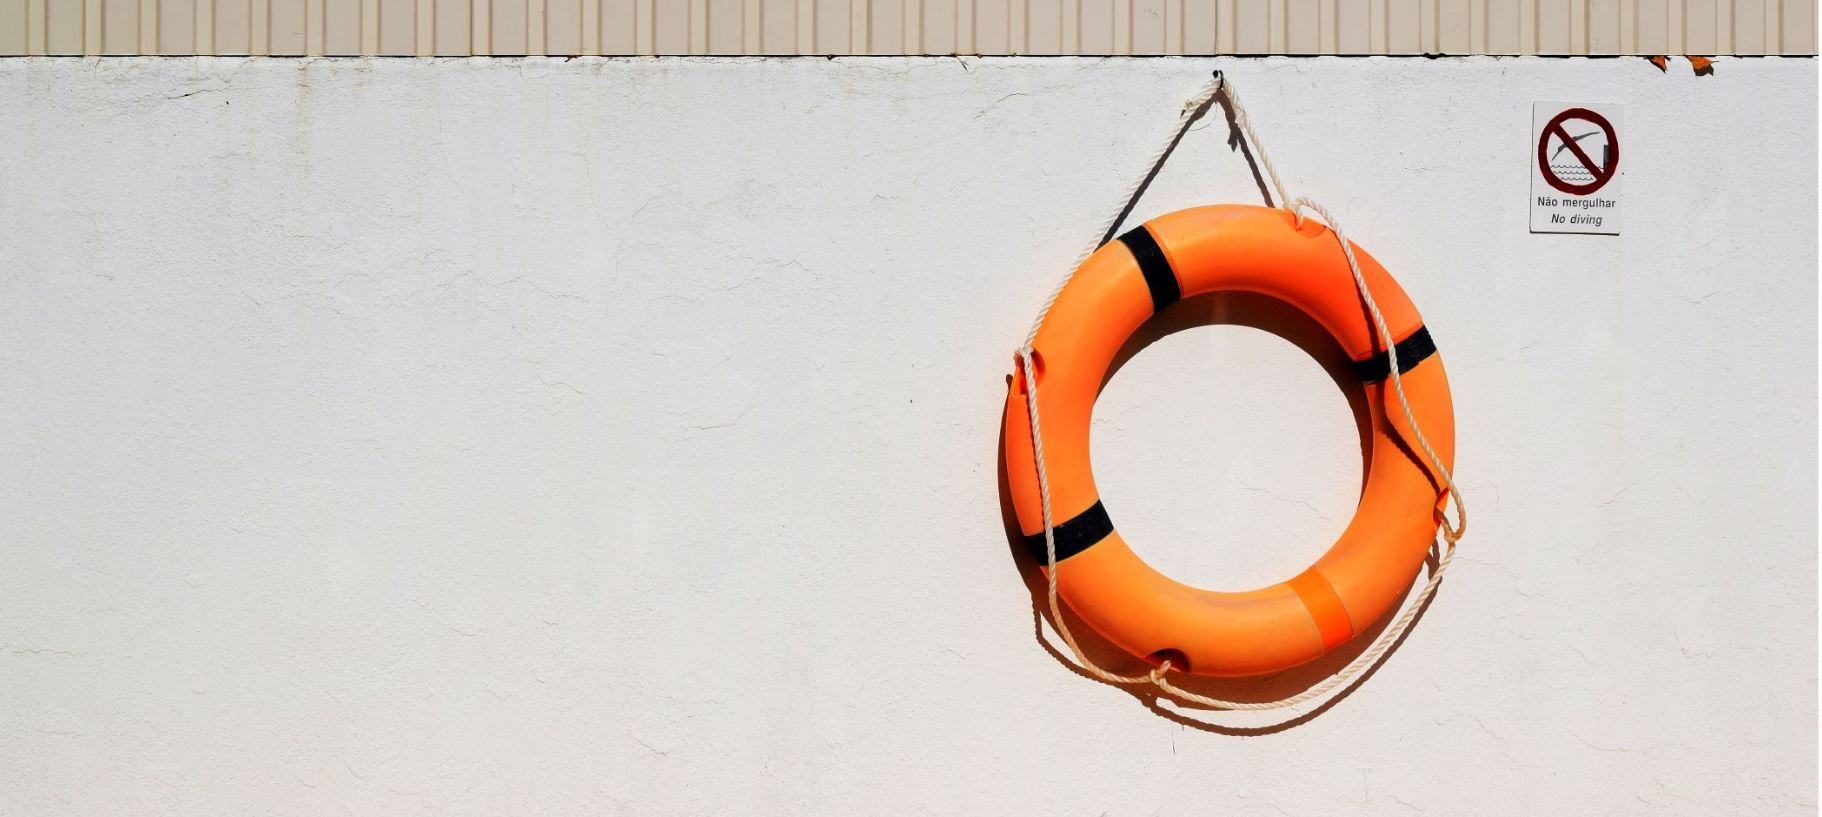 life buoy hanging on a wall